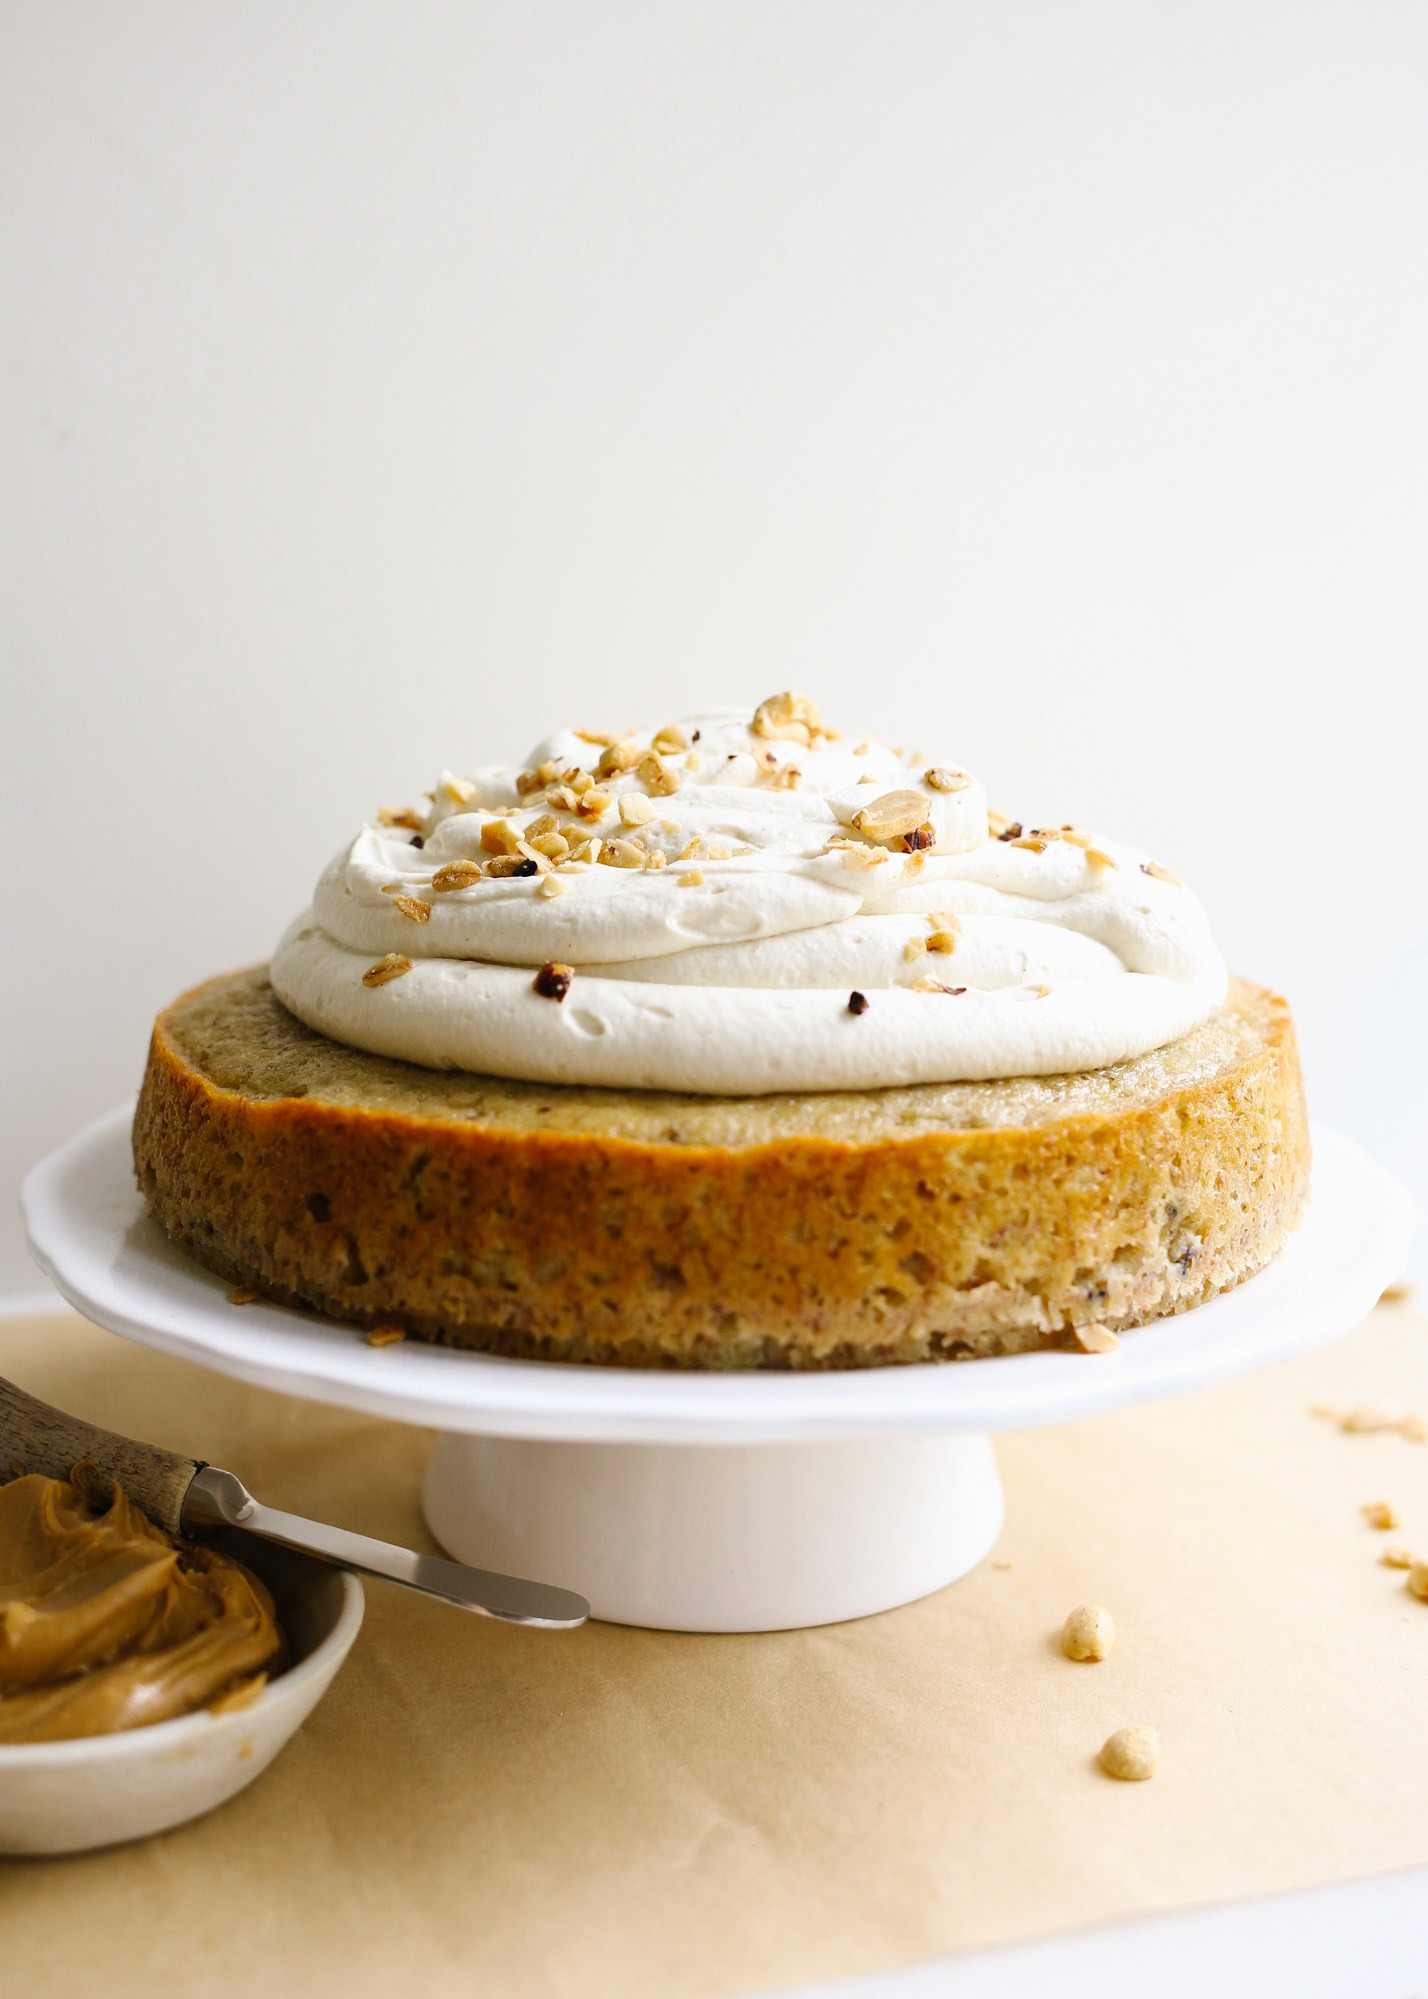 Banana Bread Cake with Peanut Butter Whipped Cream by Wood and Spoon blog. This is a moist one bowl banana bread made in a cake pan and topped with a fluffy peanut butter whipped cream. The cake can be made in a loaf or round pan and can be frozen, made ahead, and served as breakfast or dessert.